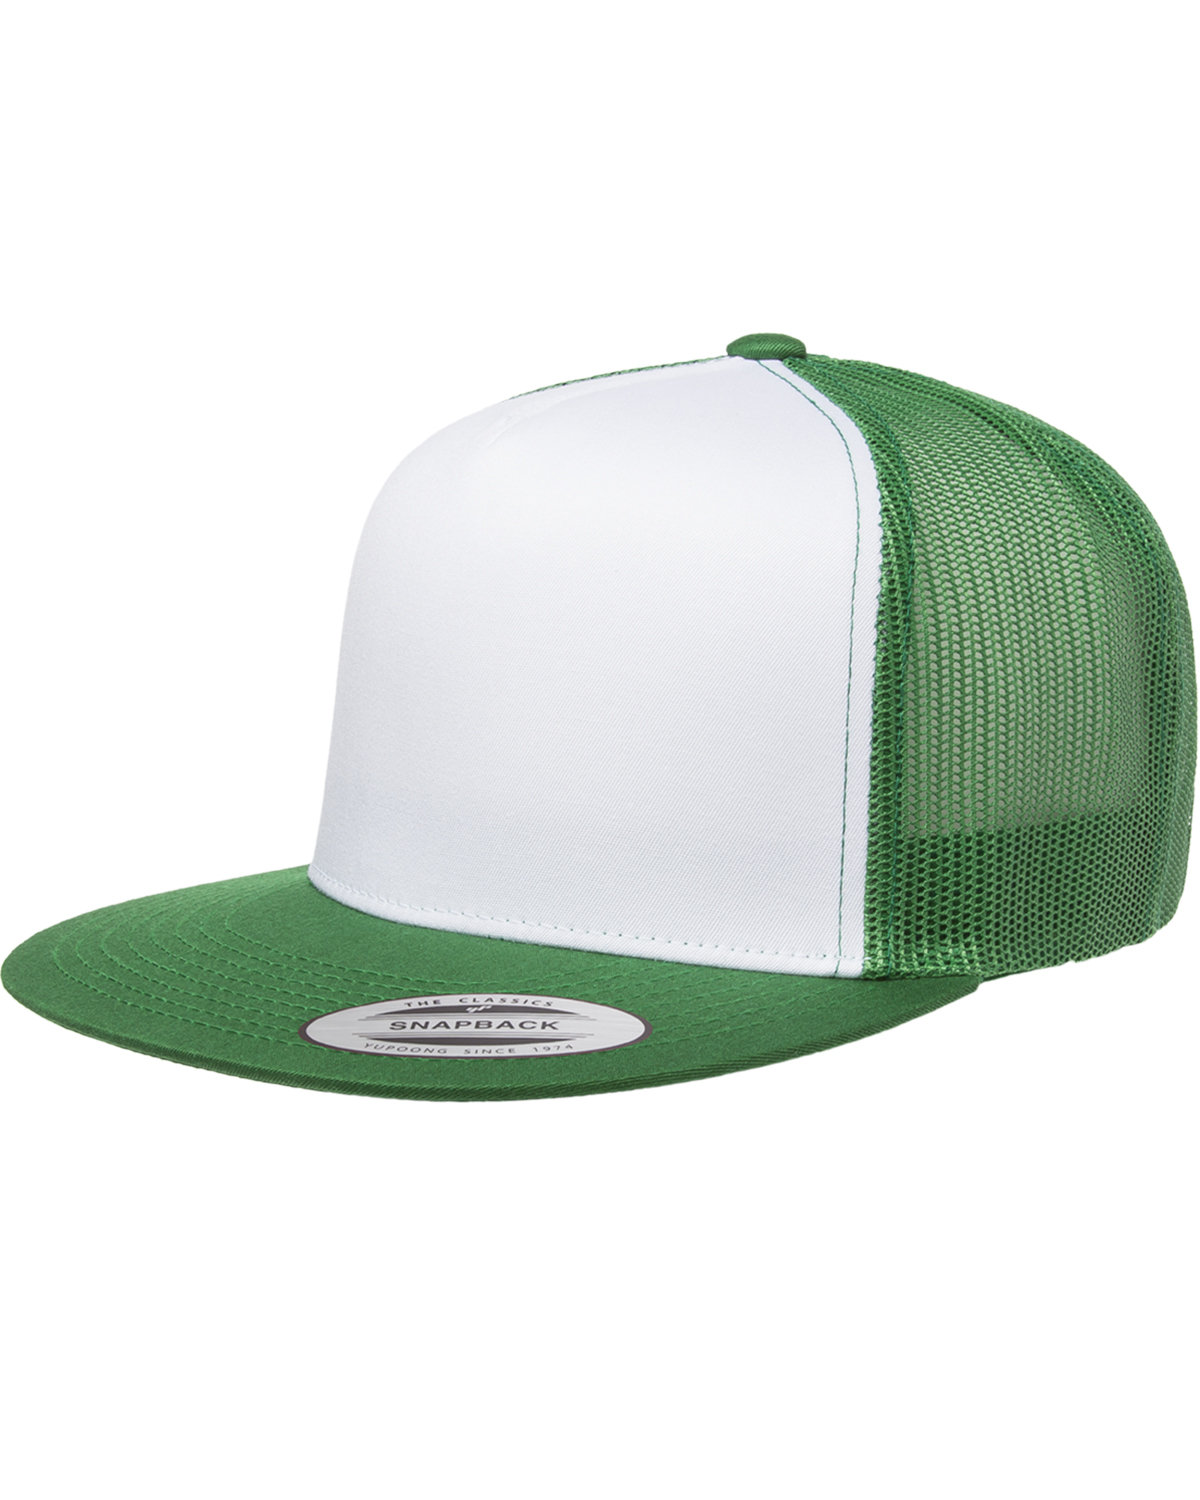 Yupoong Adult Classic Trucker with White Front Panel Cap KELLY/ WHT/ KLY